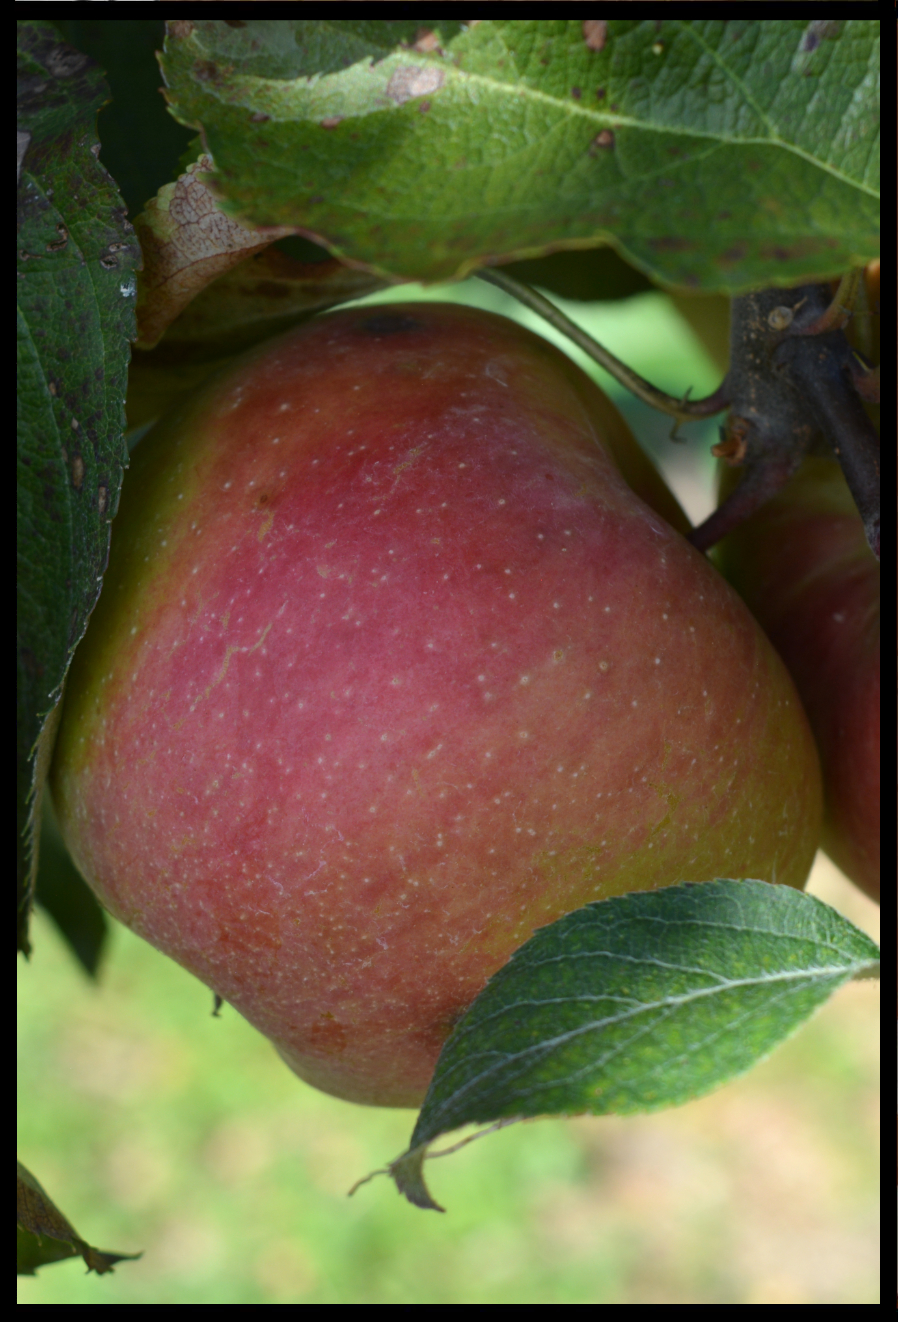 green apple in a tree with light red blush where not covered by leaves